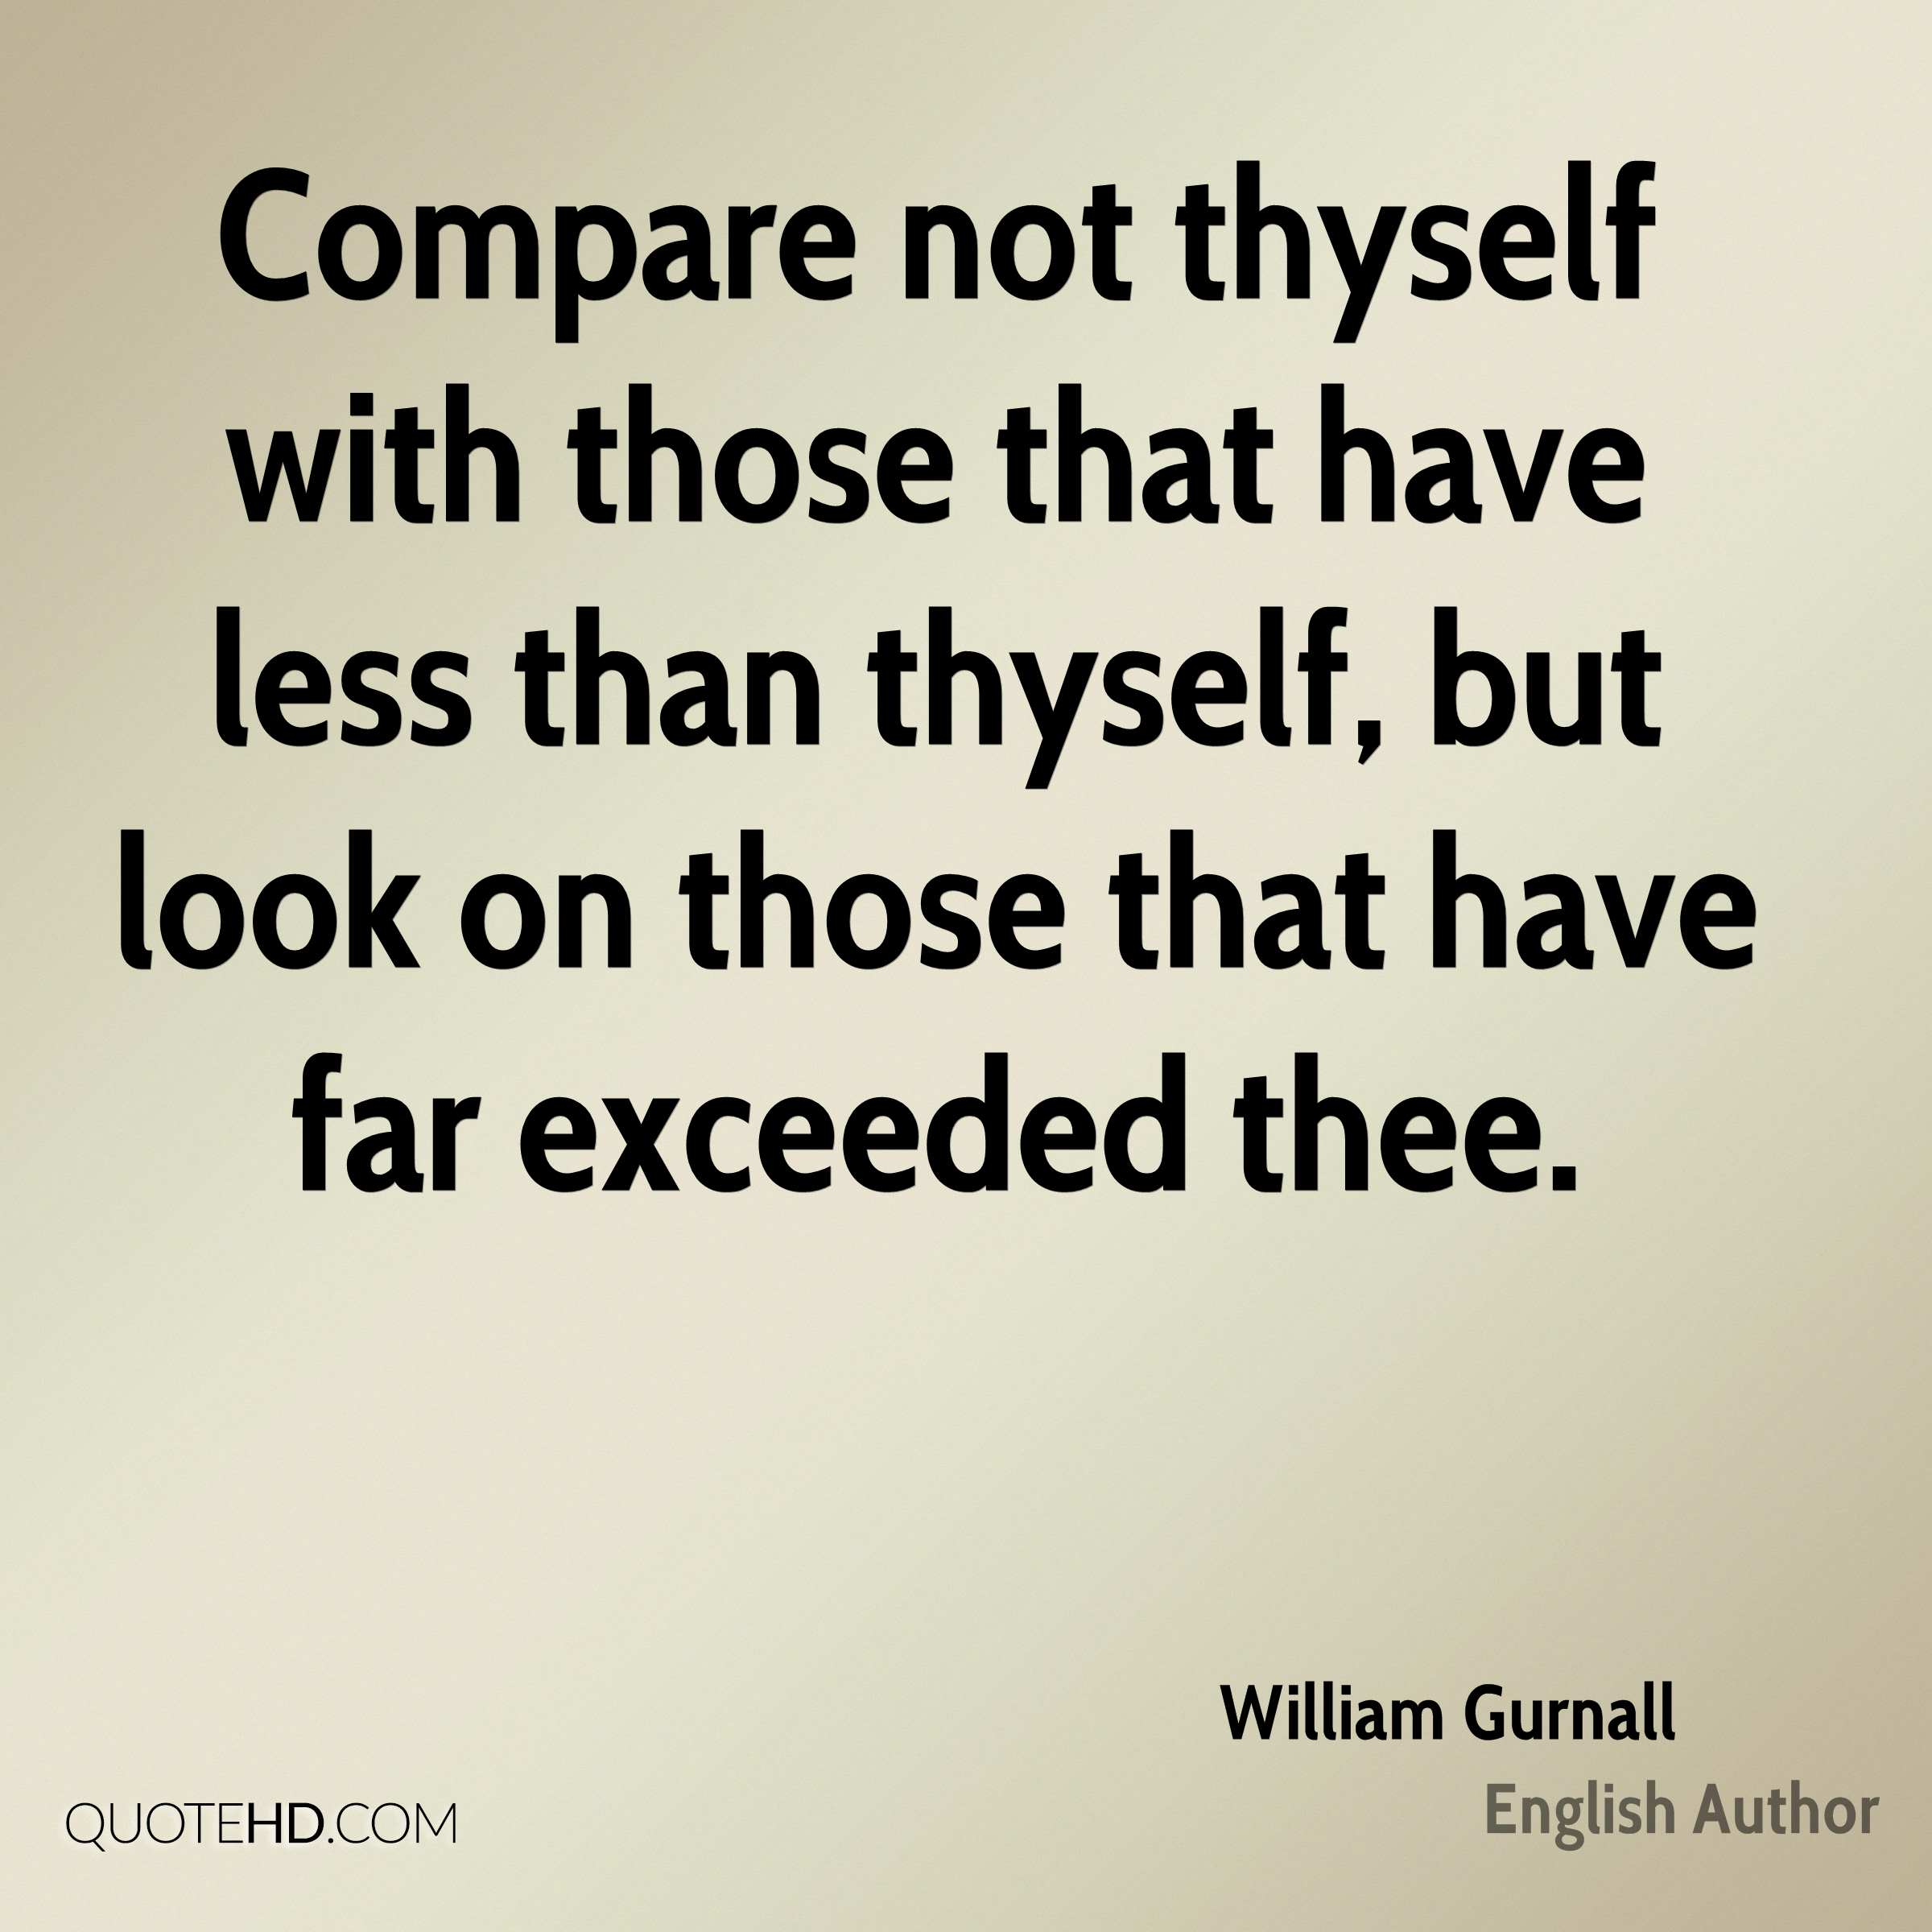 Compare not thyself with those that have less than thyself, but look on those that have far exceeded thee.